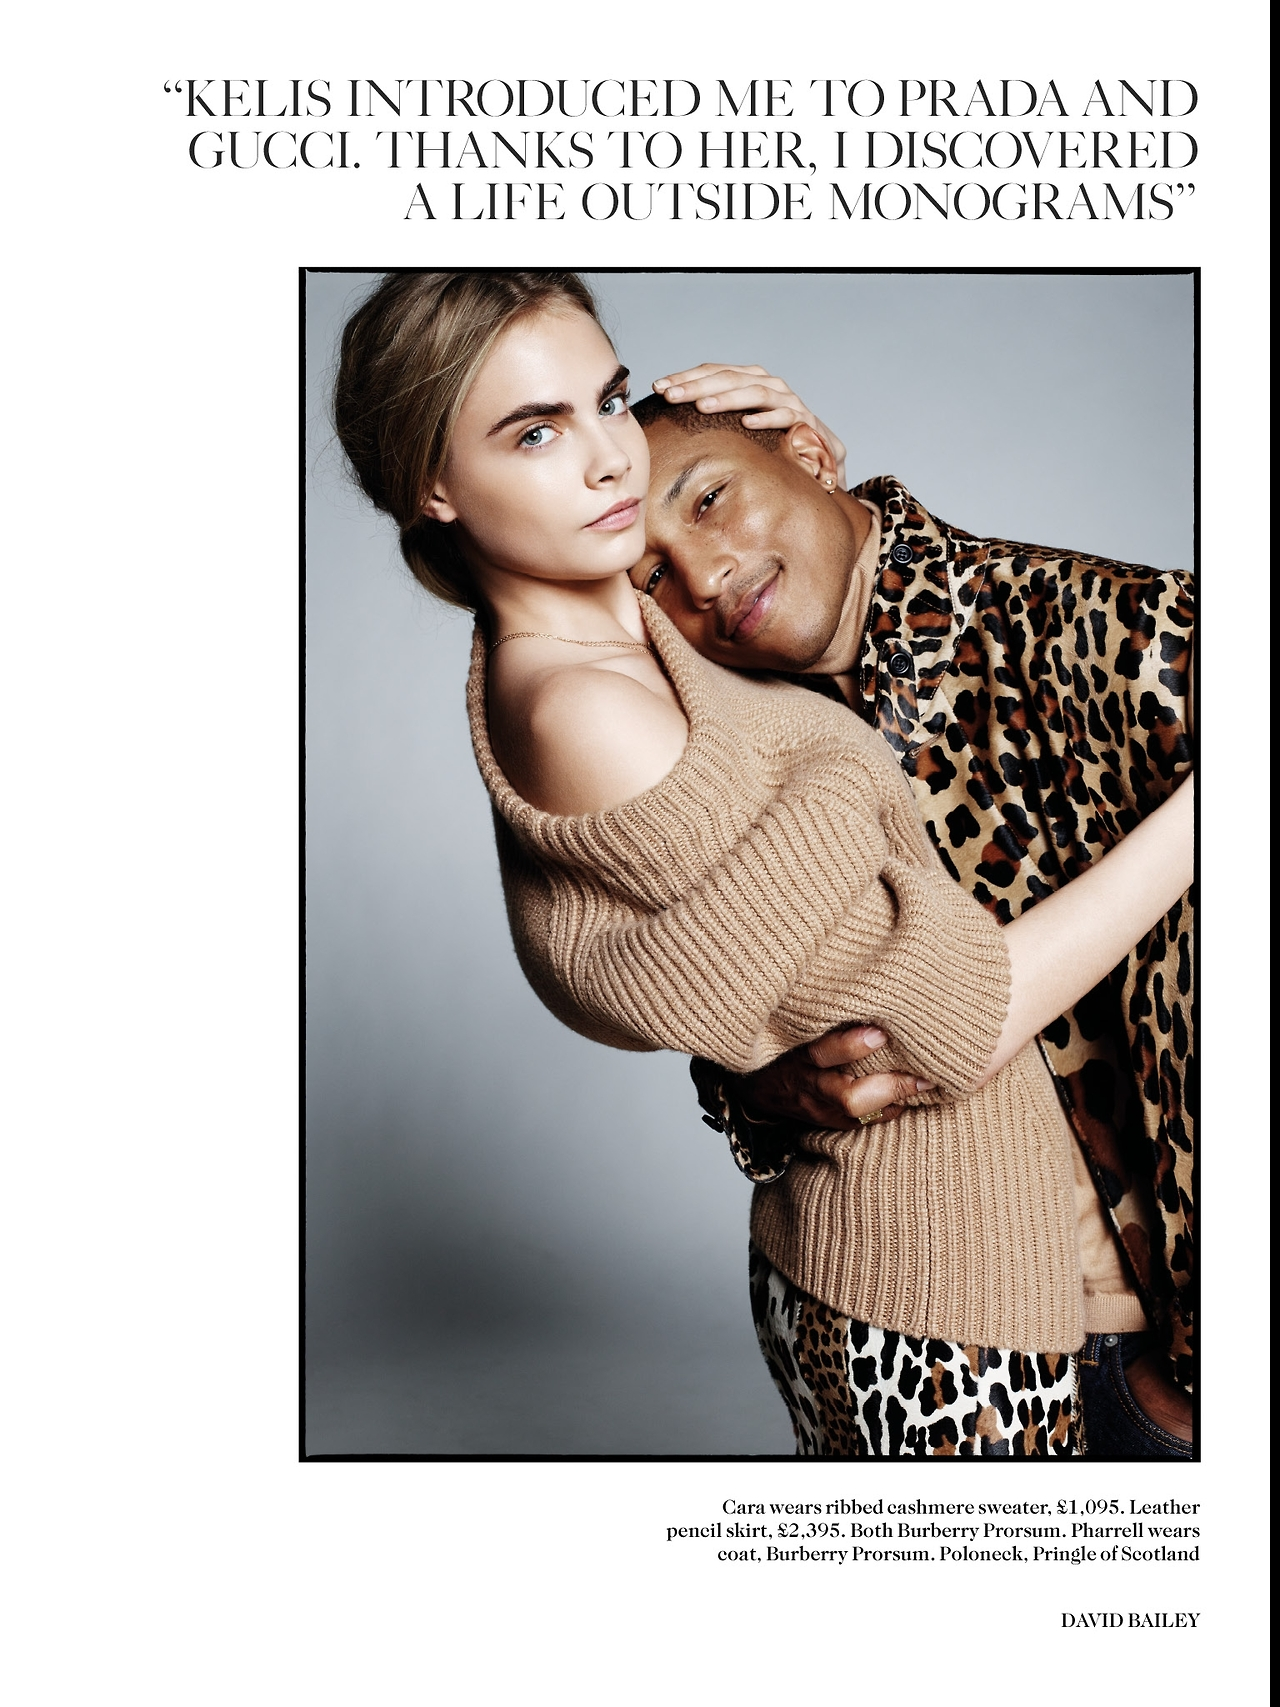 Pharrell dating Cara